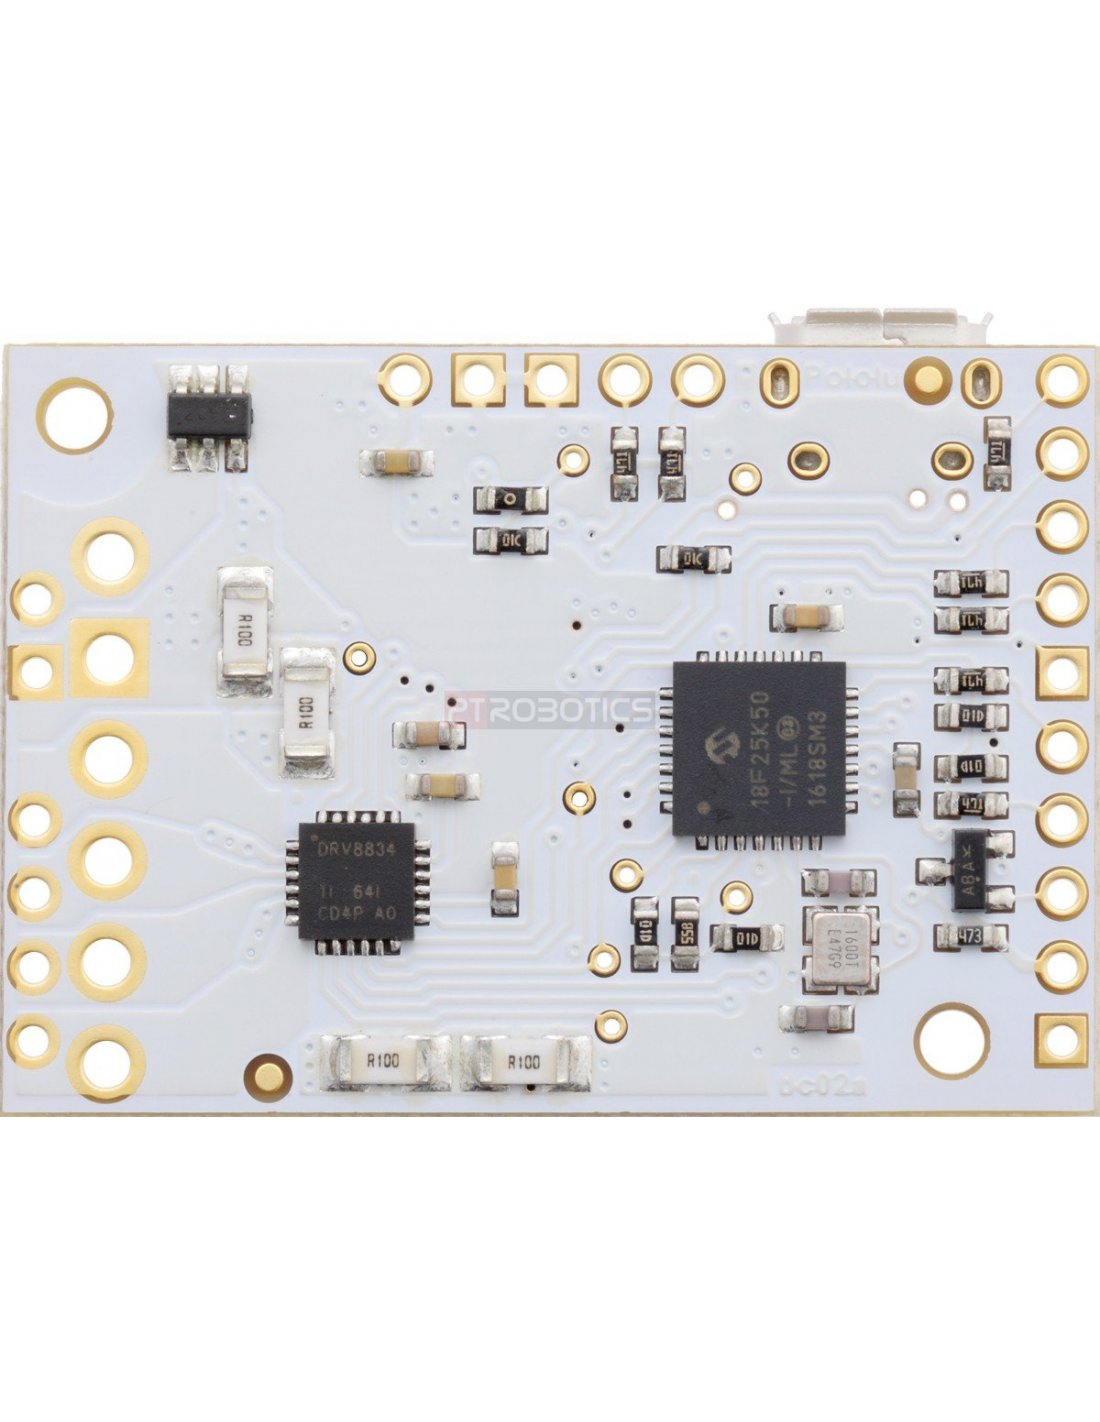 Tic t834 usb multi interface stepper motor controller for Stepper motor control software